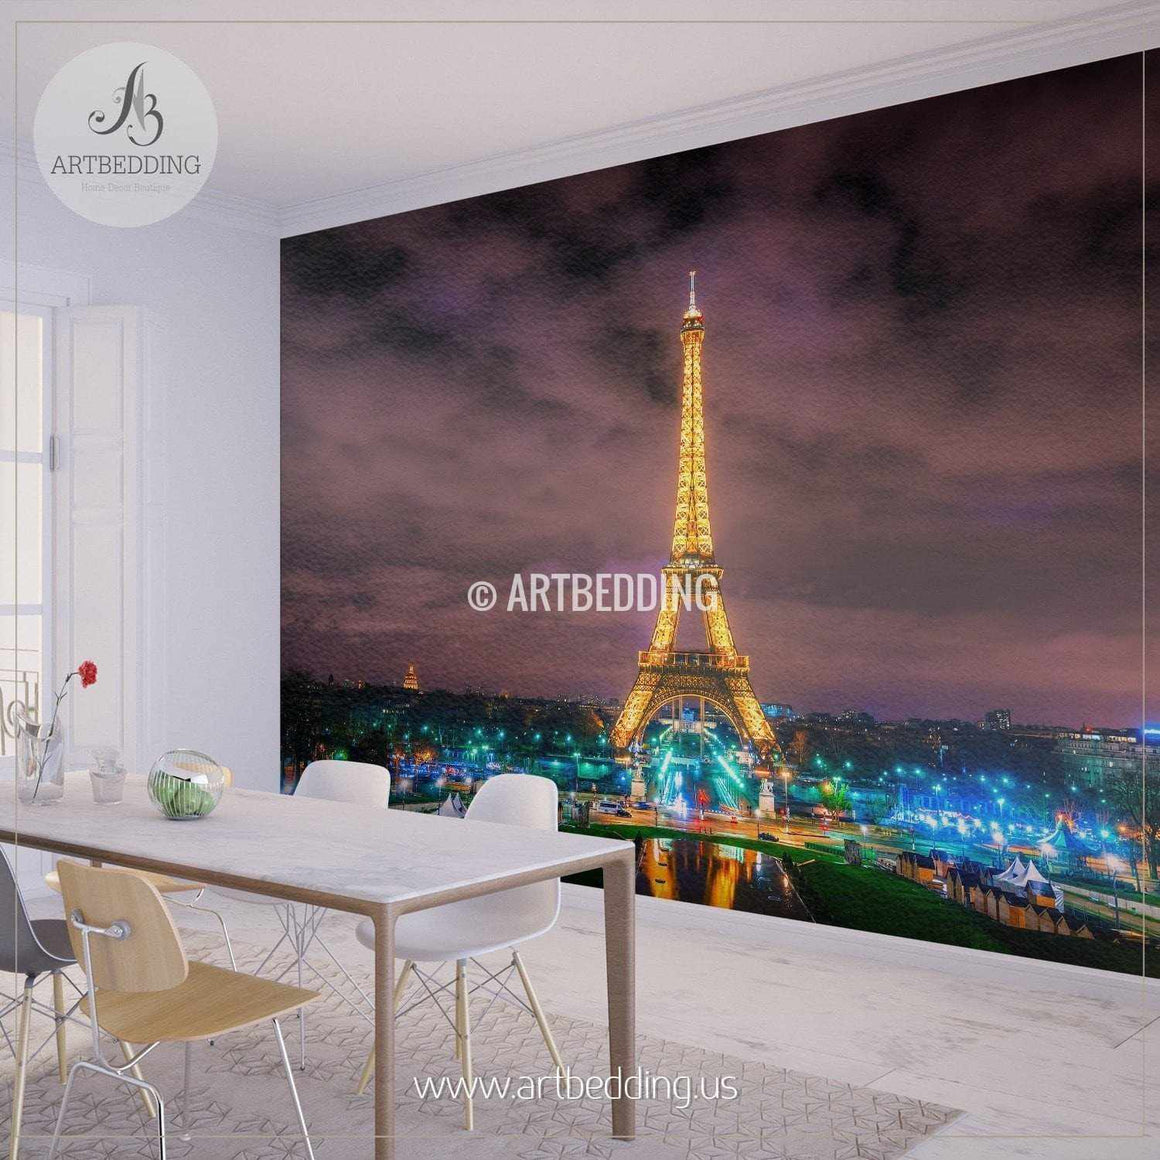 Beautiful Eiffel Tower in Paris Night Cityscape Wall Mural, France Photo sticker, France wall decor wall mural